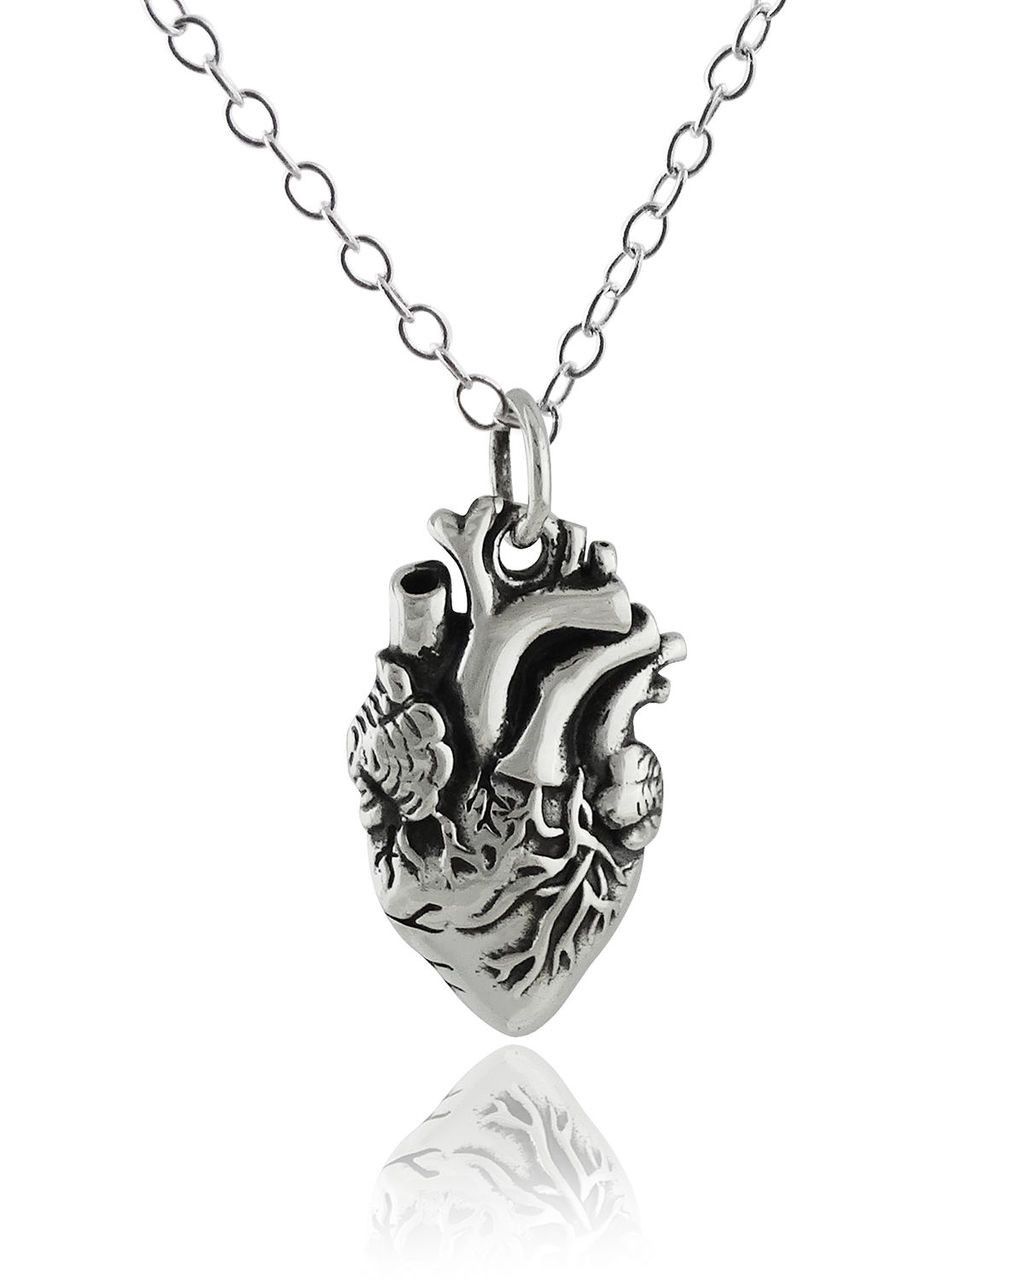 Anatomical Heart Charm Necklace